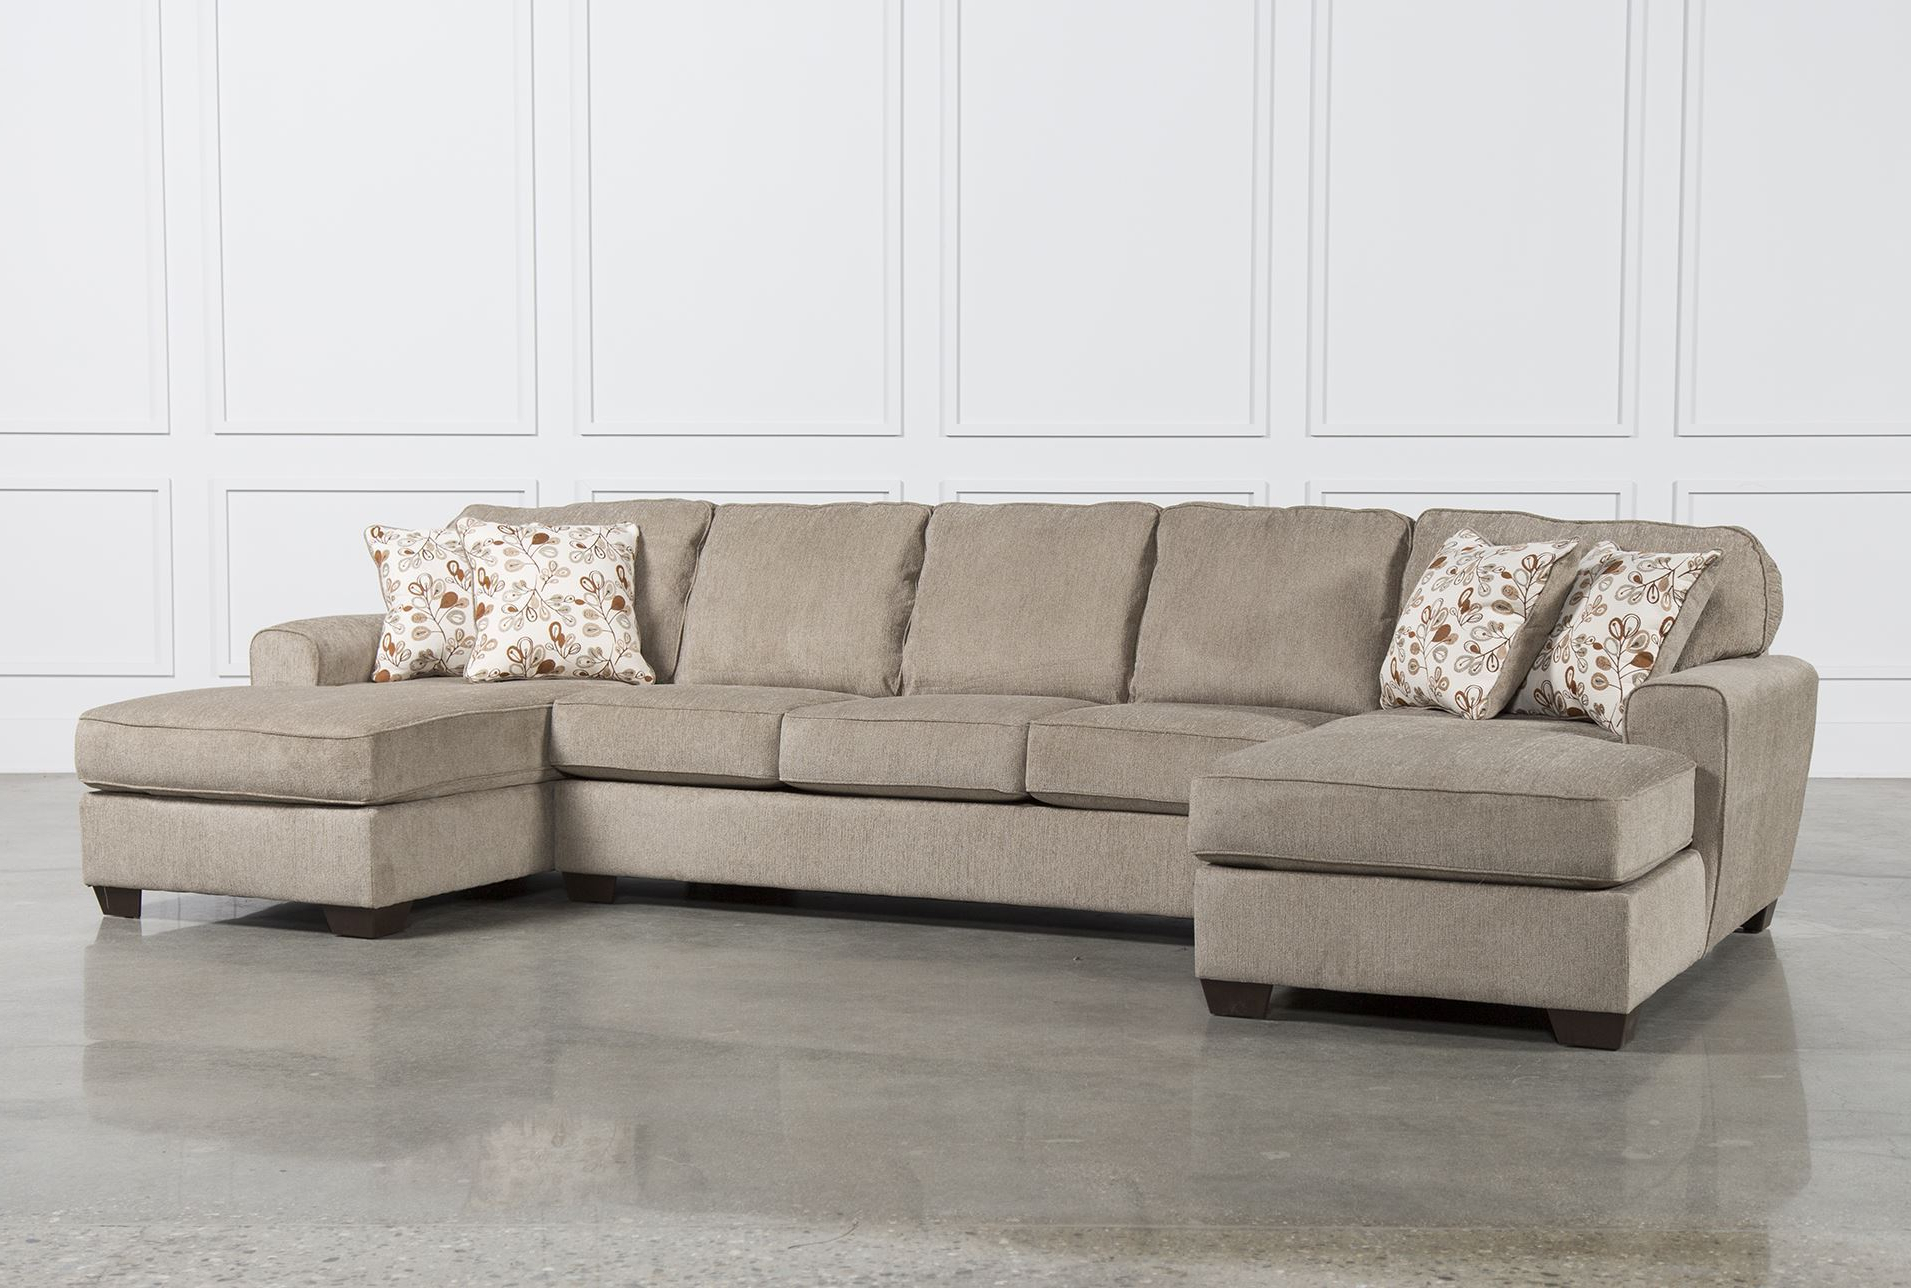 Fashionable Living Spaces Small Sectional Sofas – Sofa Design Ideas Intended For Avery 2 Piece Sectionals With Laf Armless Chaise (Gallery 12 of 20)